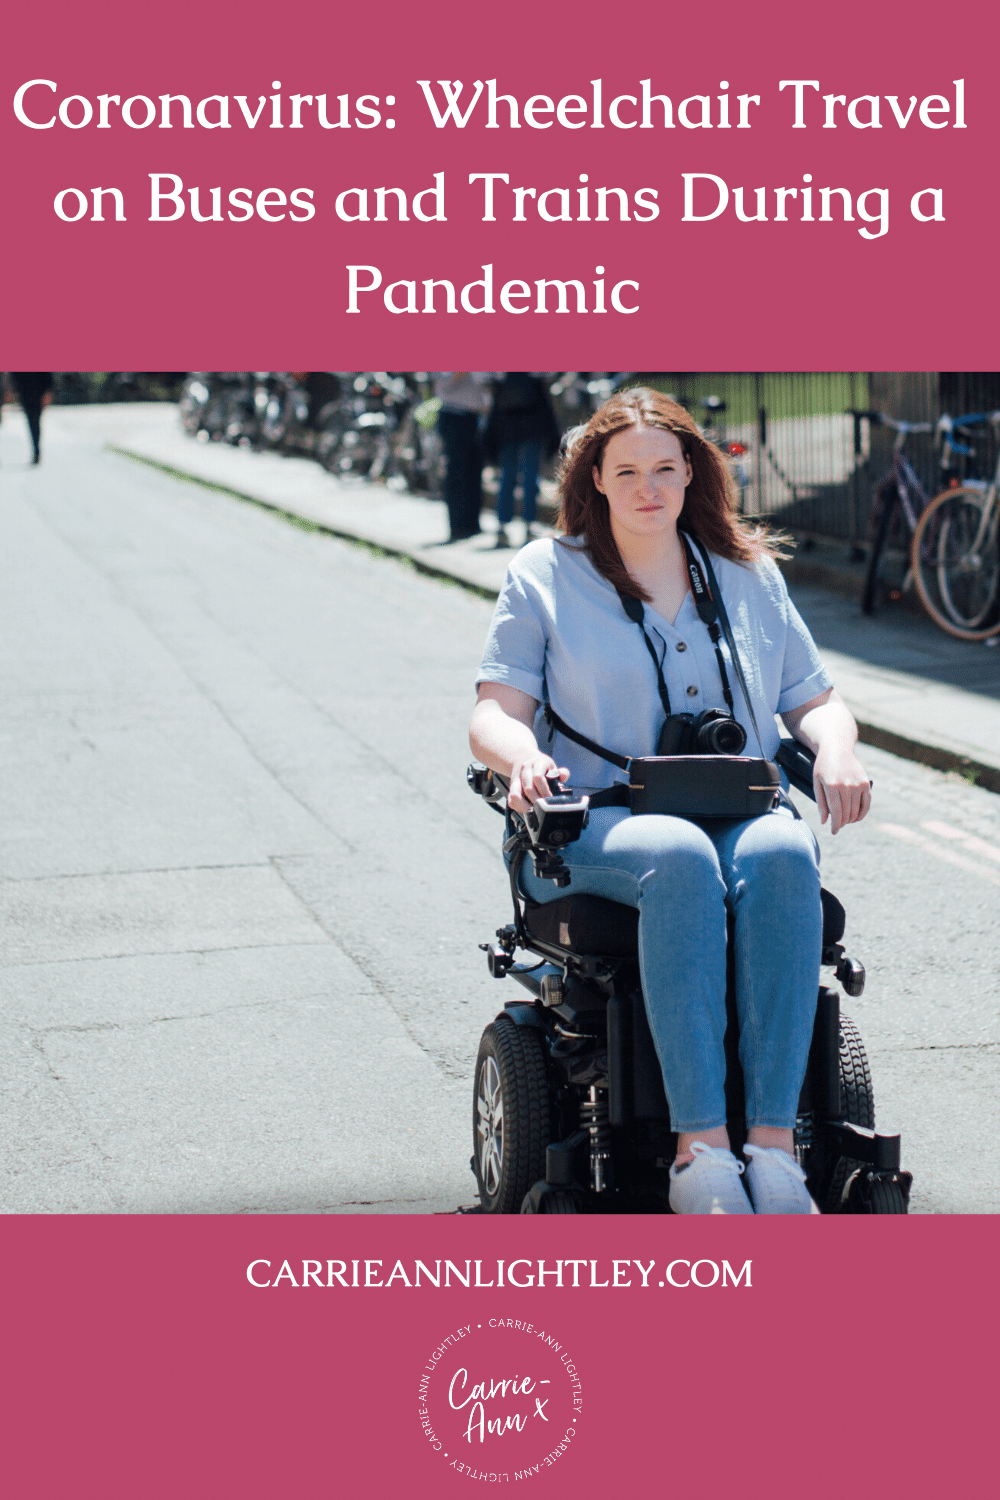 Top of image reads - Coronavirus: Wheelchair Travel on Buses and Trains During a Pandemic. Middle of image shows Shona in her powerchair. Bottom of image has this blog's website address and logo